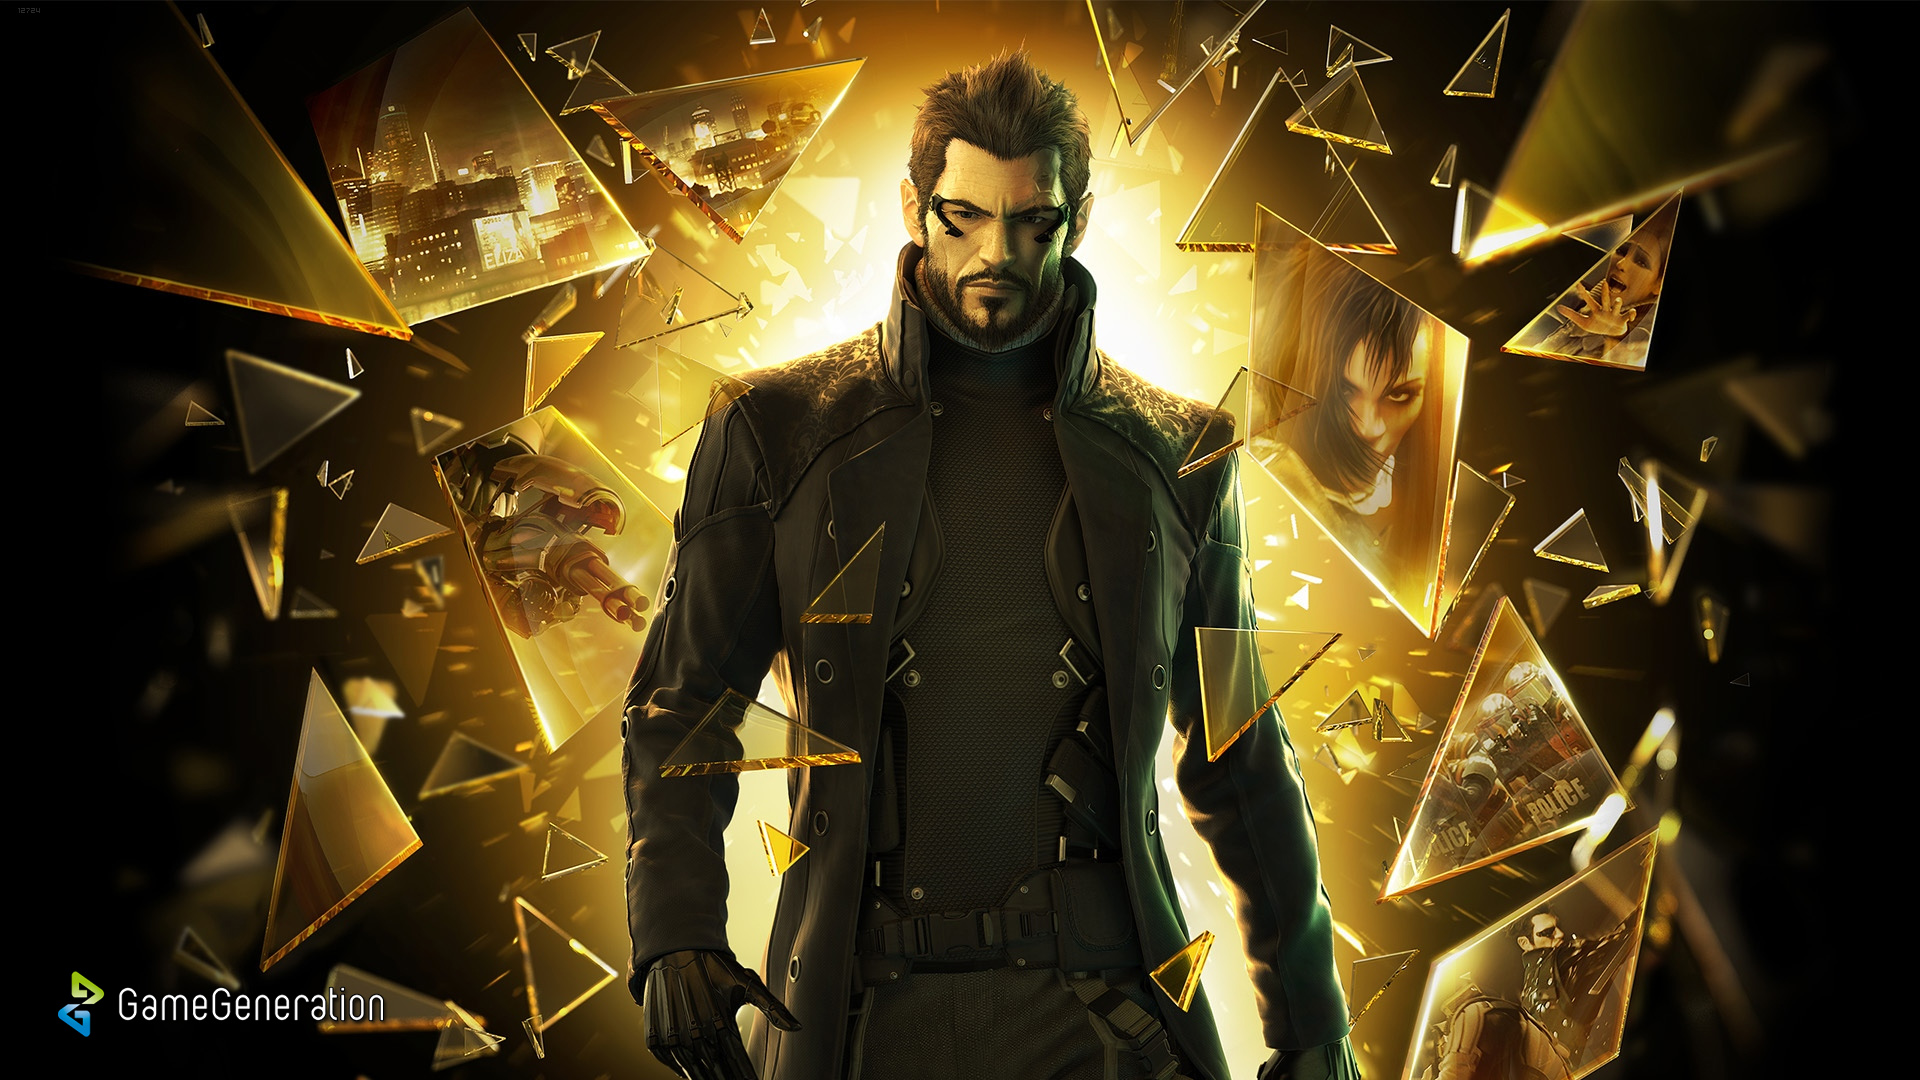 Deus Ex Human Revolution Skyrim Ps3 Wallpaper 1080p Wallpaper